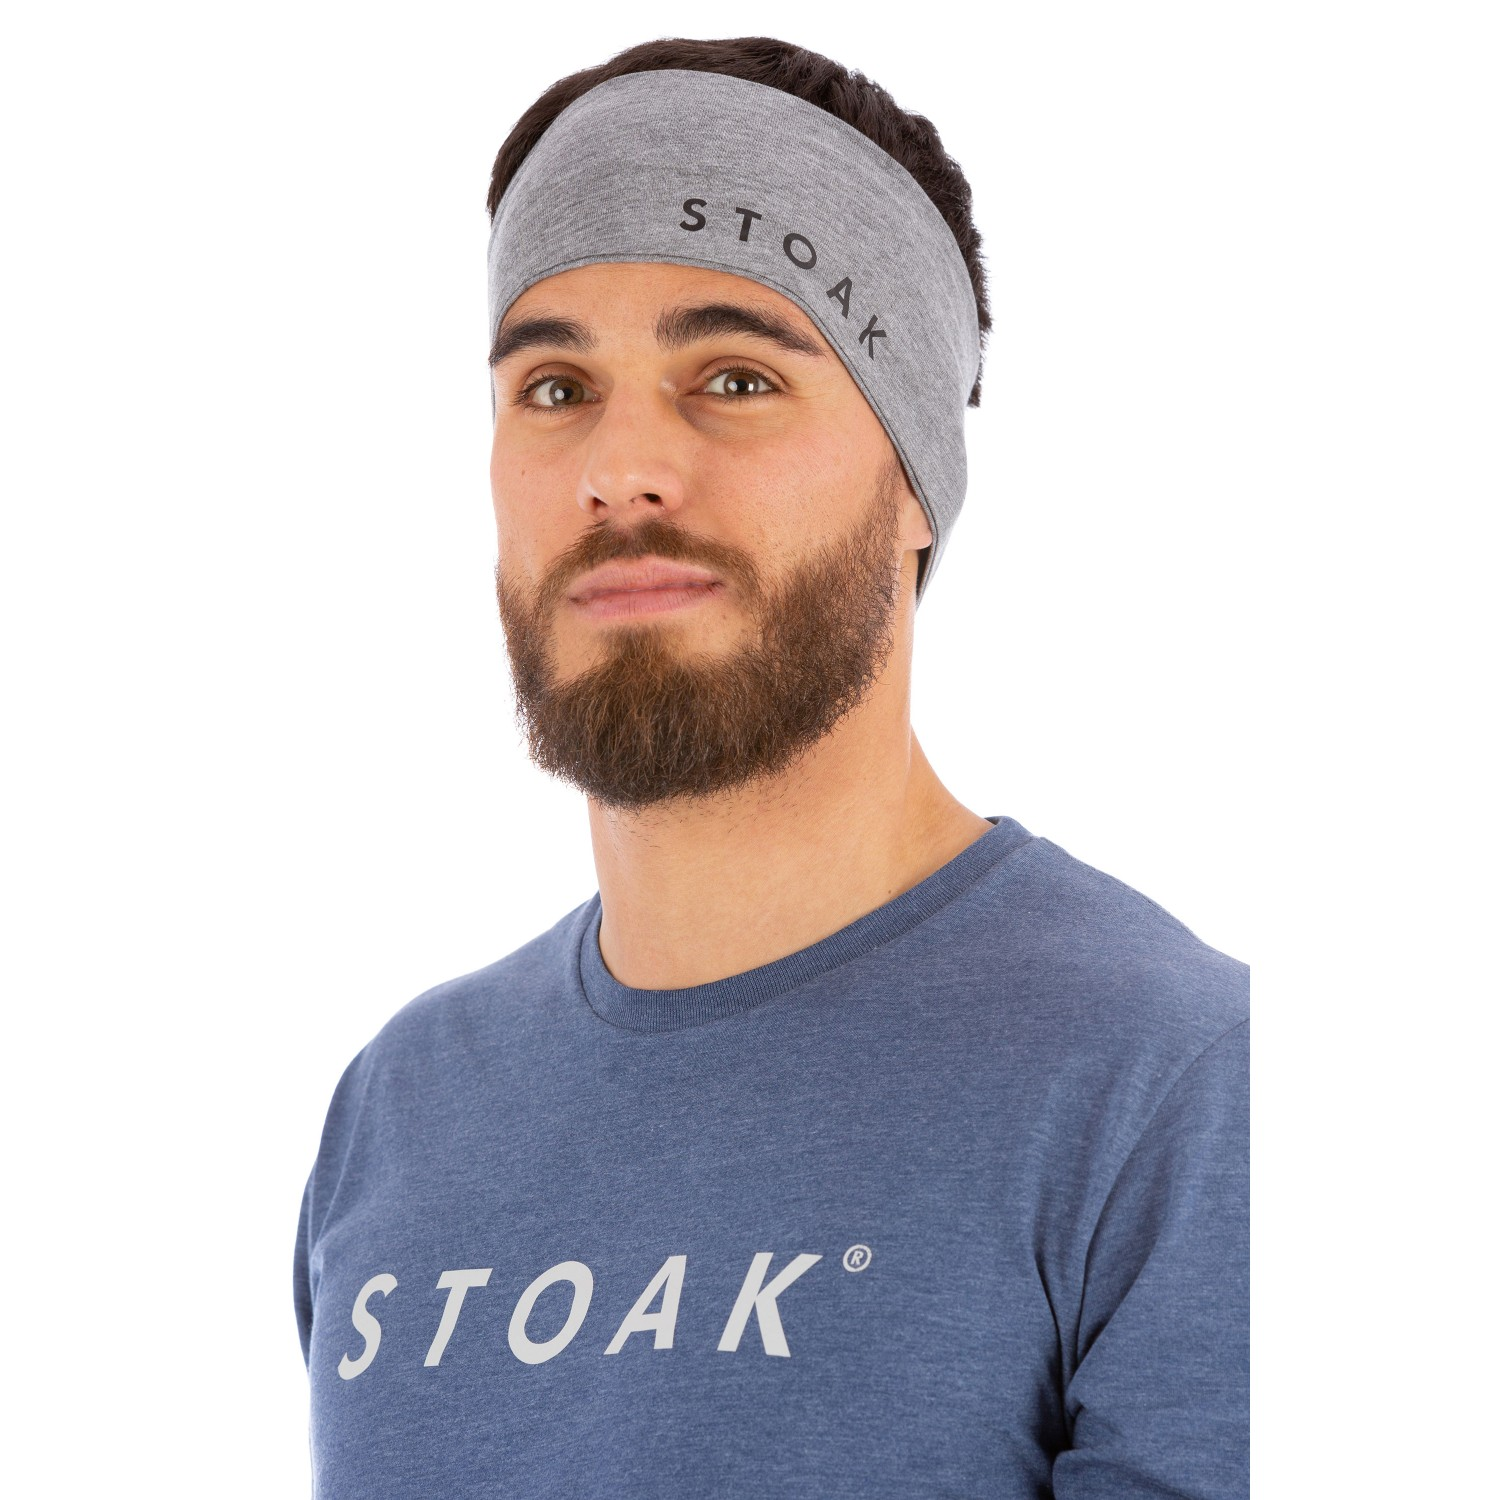 STOAK ROCK Headband | MADE IN AUSTRIA